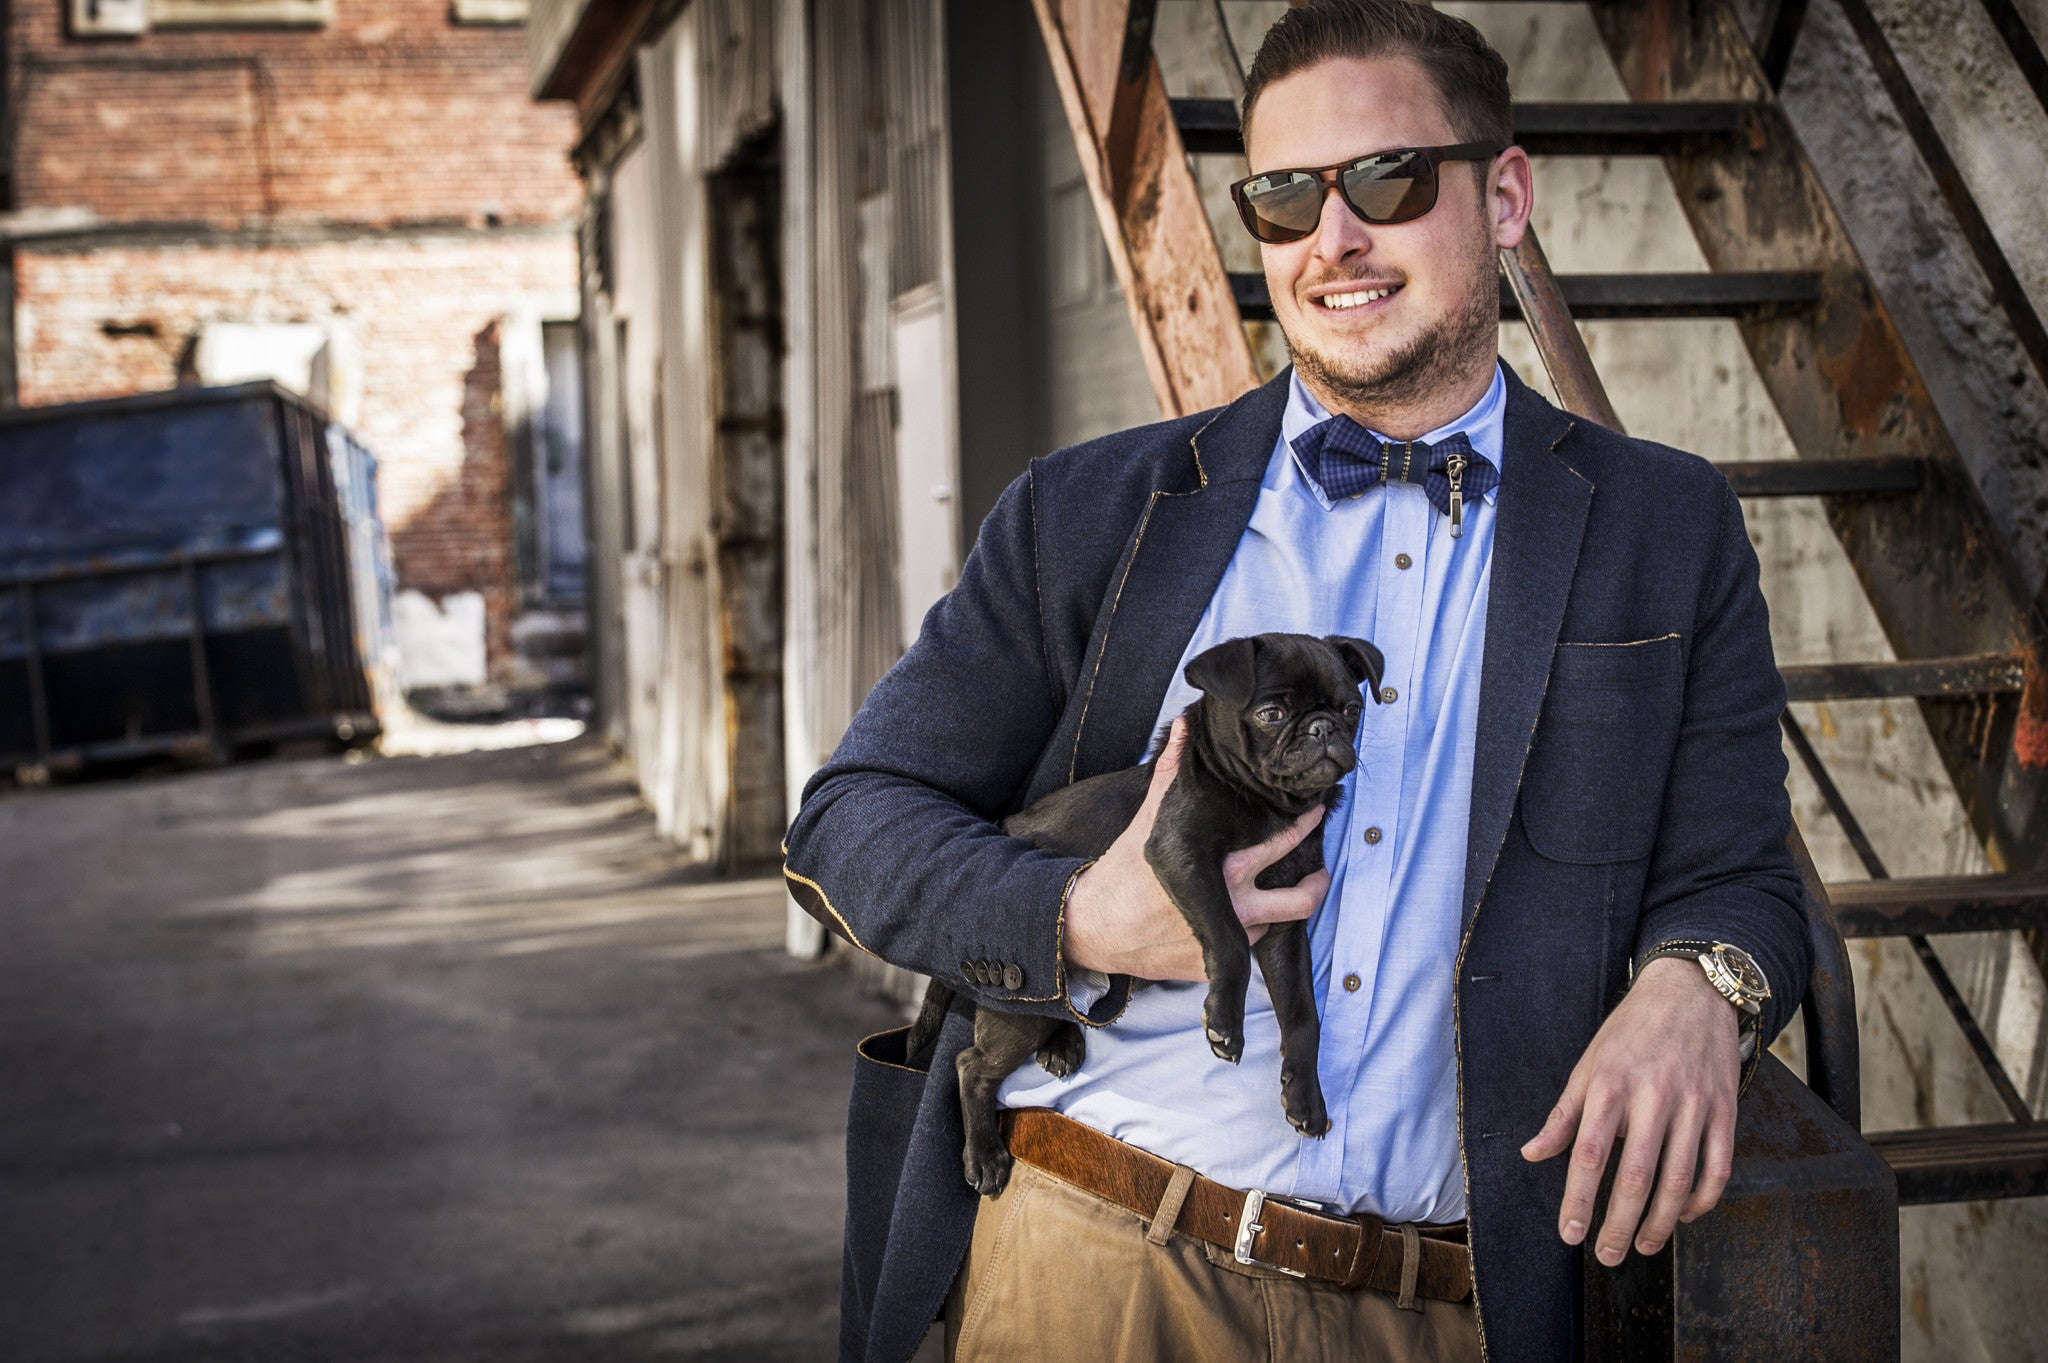 Dare to wear high-end handmade ties and bow ties from Swell Fellow